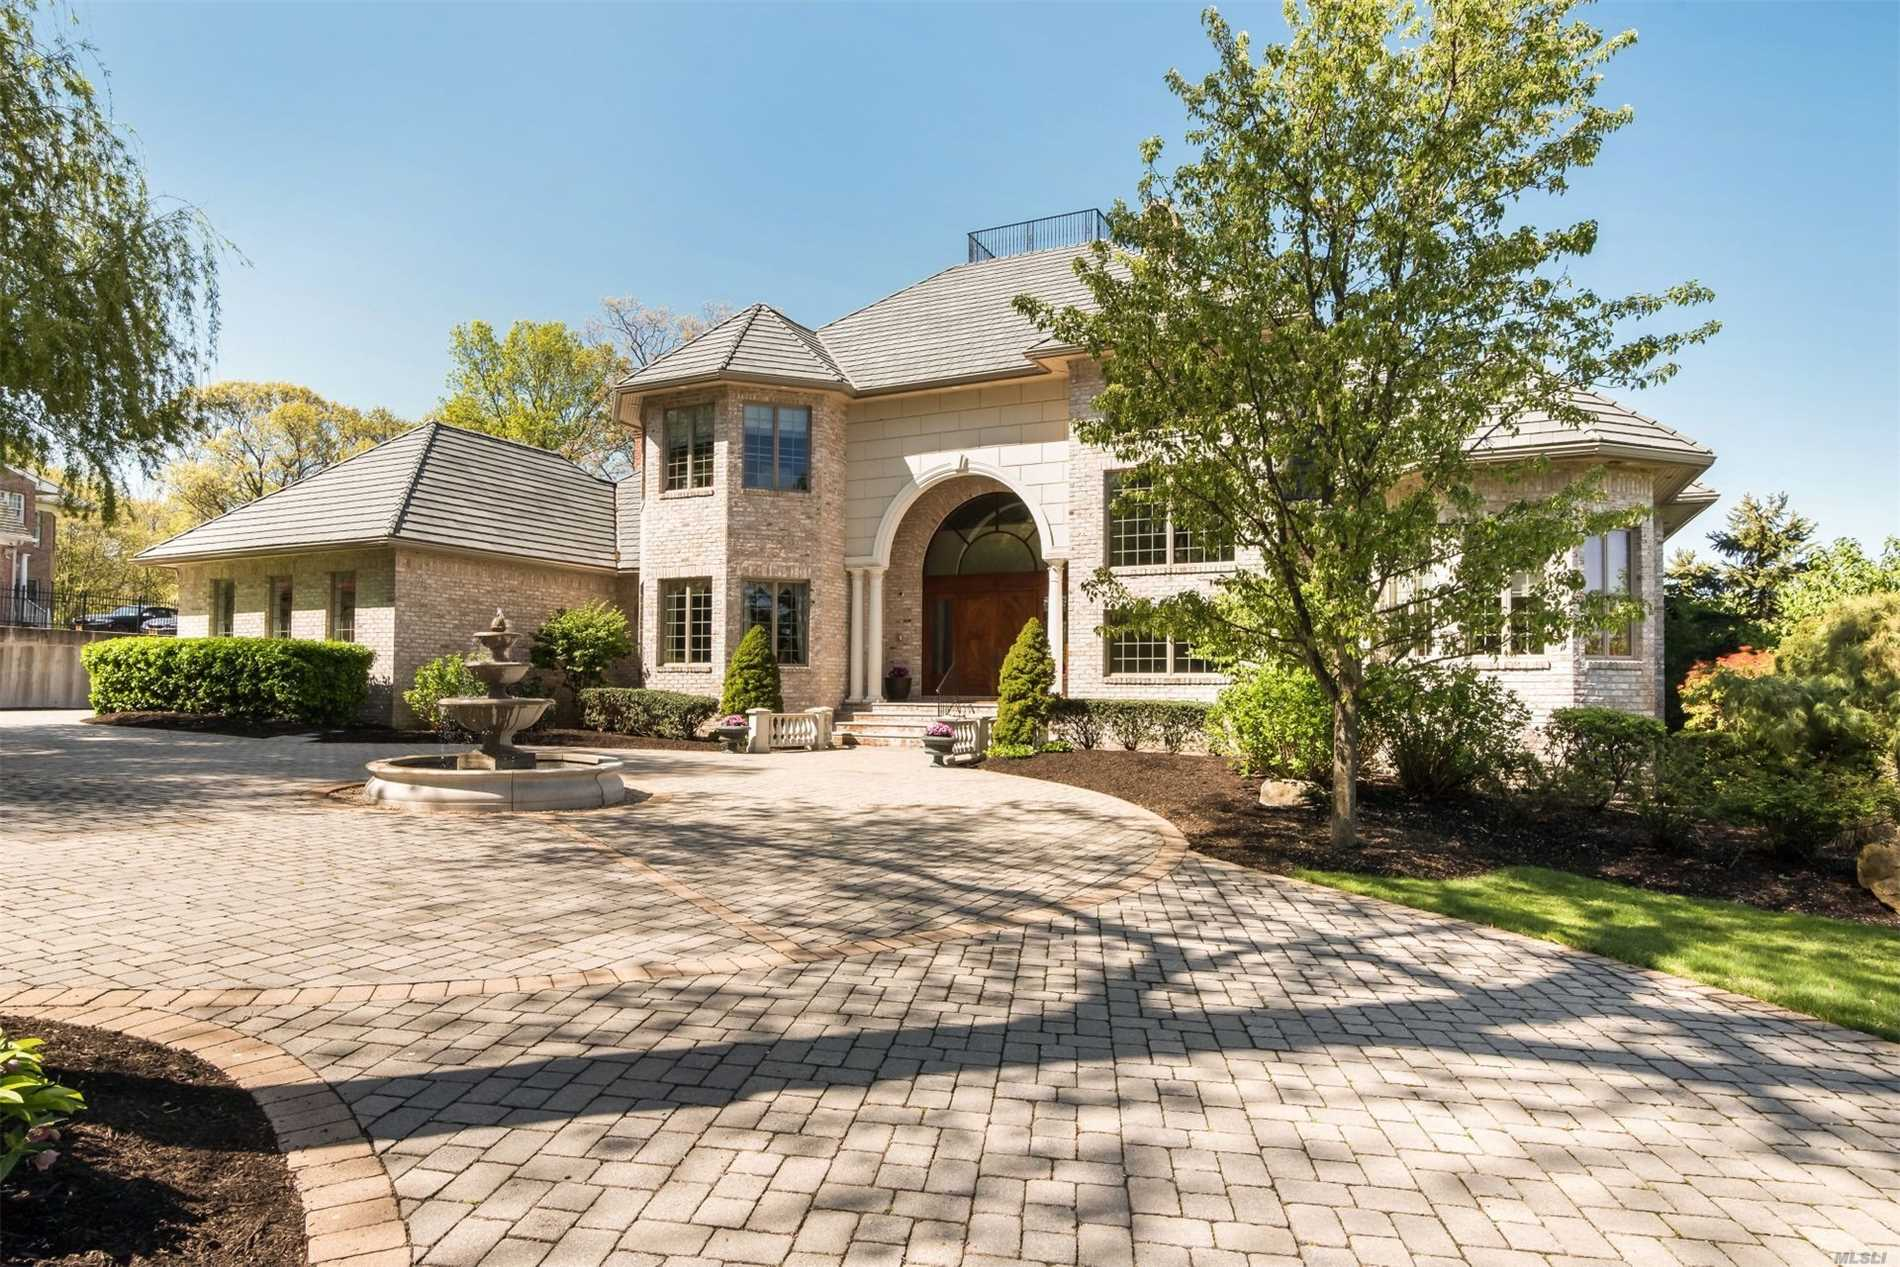 **Motivated 2019 Spring Relo** Fabulous Post Modern W/Magnificent Panoramic Views Of Mt.Sinai Harbor. Spectacular Gourmet Kitchen W/Deluxe Sub Zero & 6 Burner W/Grill W/Breakfast Area Opens Den. Library/Study. Main Level Regal Master En-Suite & Opulent Master Bath. Grand Staircase Leads To 2nd Floor Gallery & 4, 000 Sq Ft. Bsmnt W/Copper Bar&Lounge, Game Rm, Gym And Bath.Smart Home W/24 Hr. Extensive Alarm System. Radiant Heated Floors&Surround To 1st Floor & Bsmnt & All Balconies.